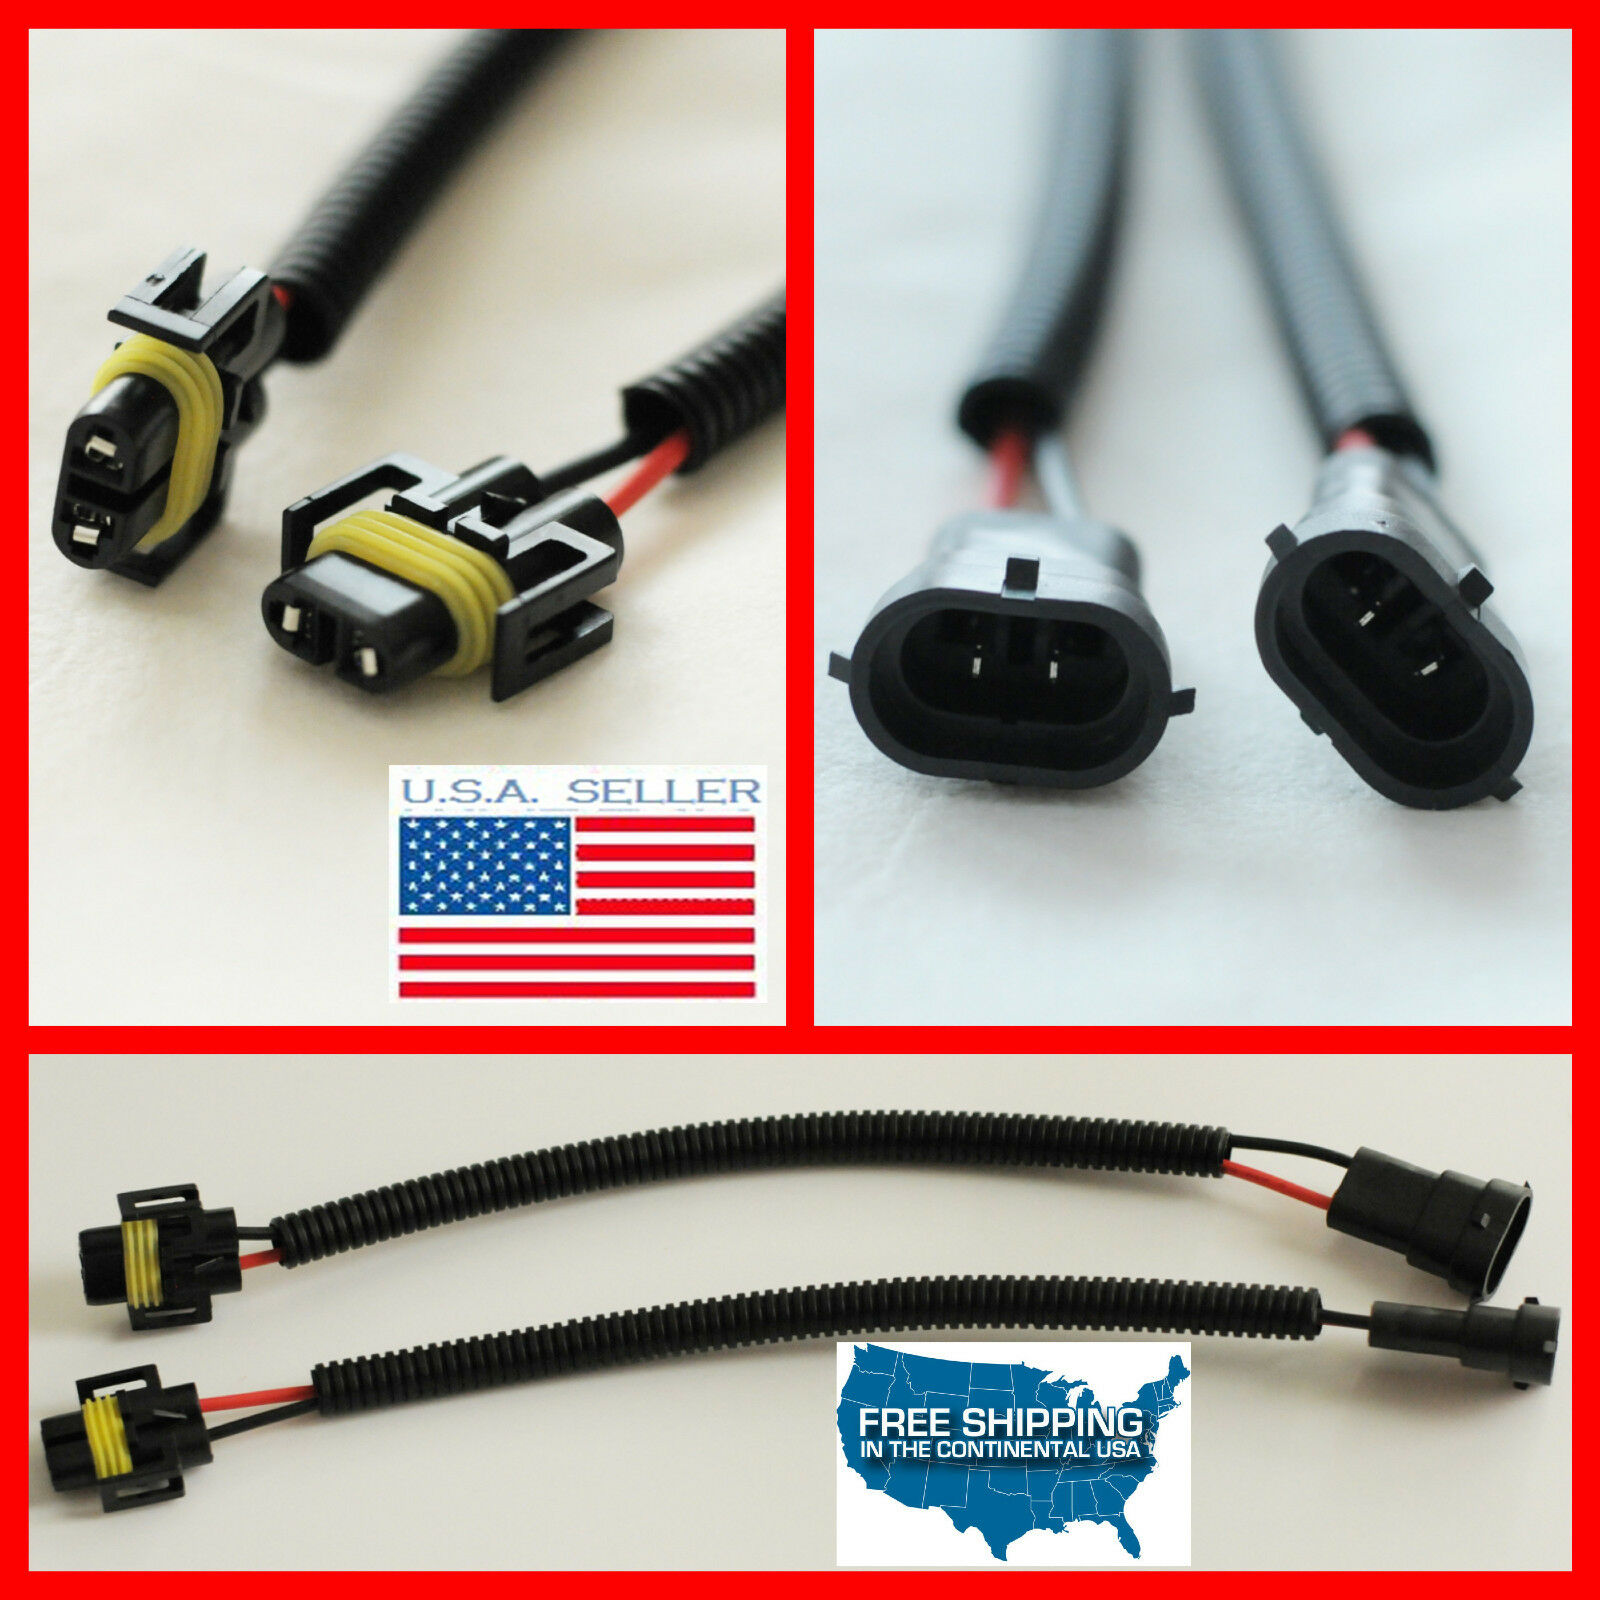 H8 Wiring Harness Library Bmw Connector H11 H9 Socket Wire Plug Extension Cables Hid Led 1 Of